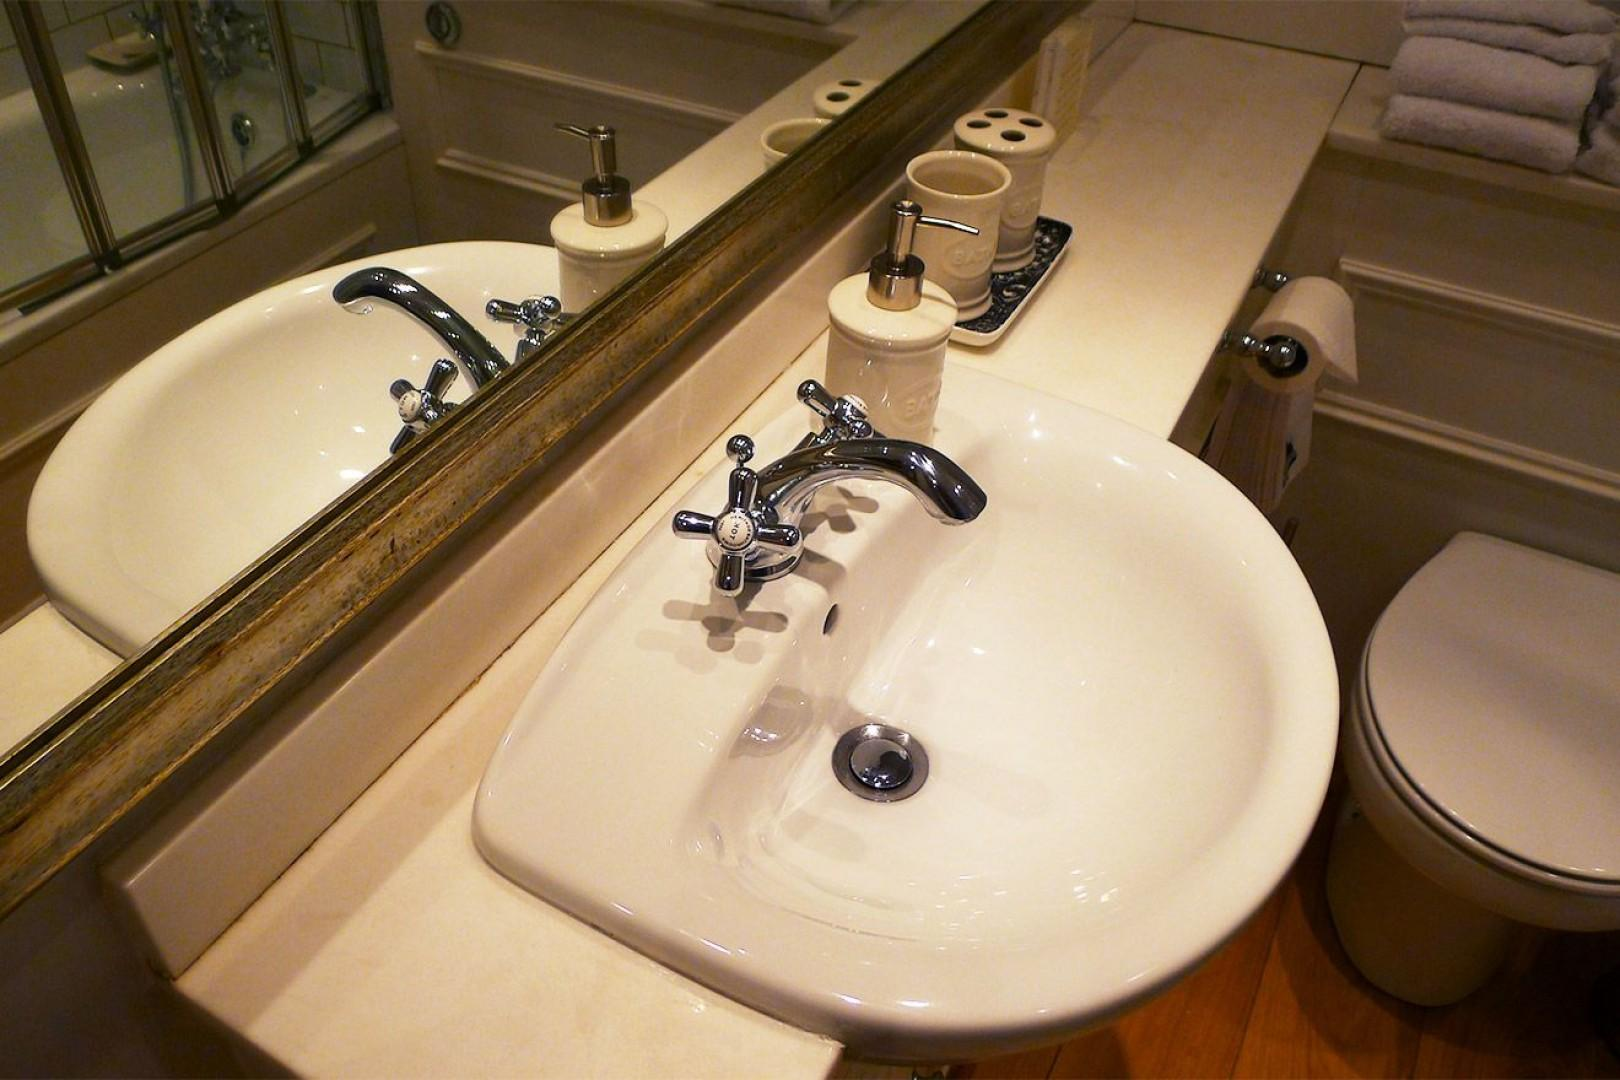 Fashionable fixtures and modern necessities